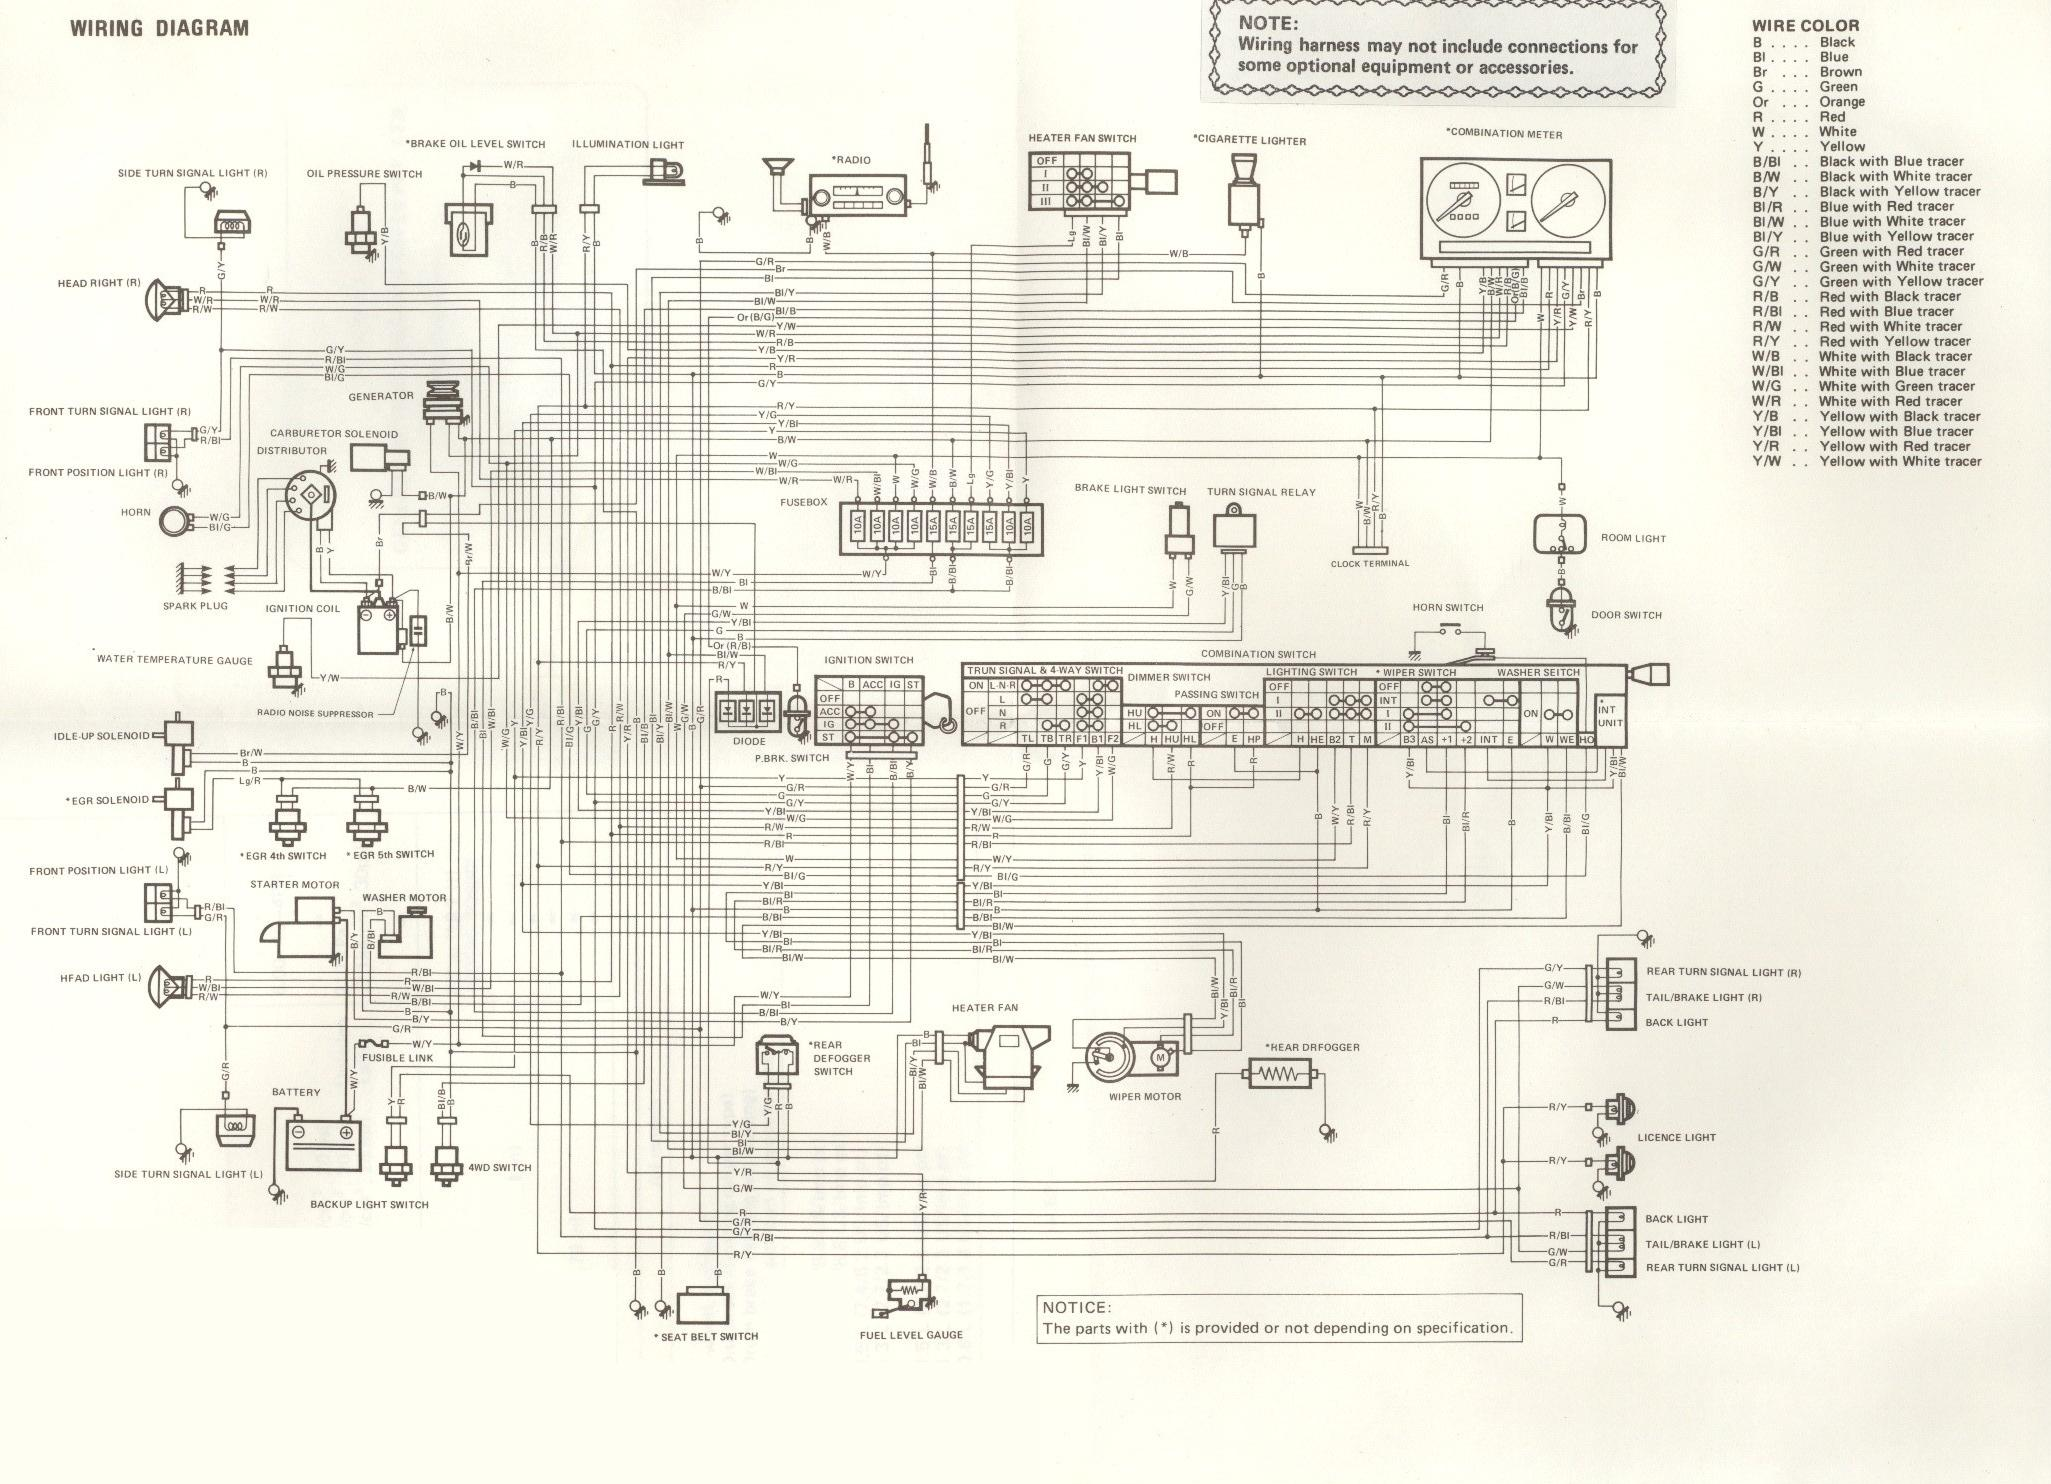 suzuki samurai wiringdiagram LJDoMre suzuki lights wiring diagram wiring diagram shrutiradio Suzuki Motorcycle Wiring Diagrams at bayanpartner.co